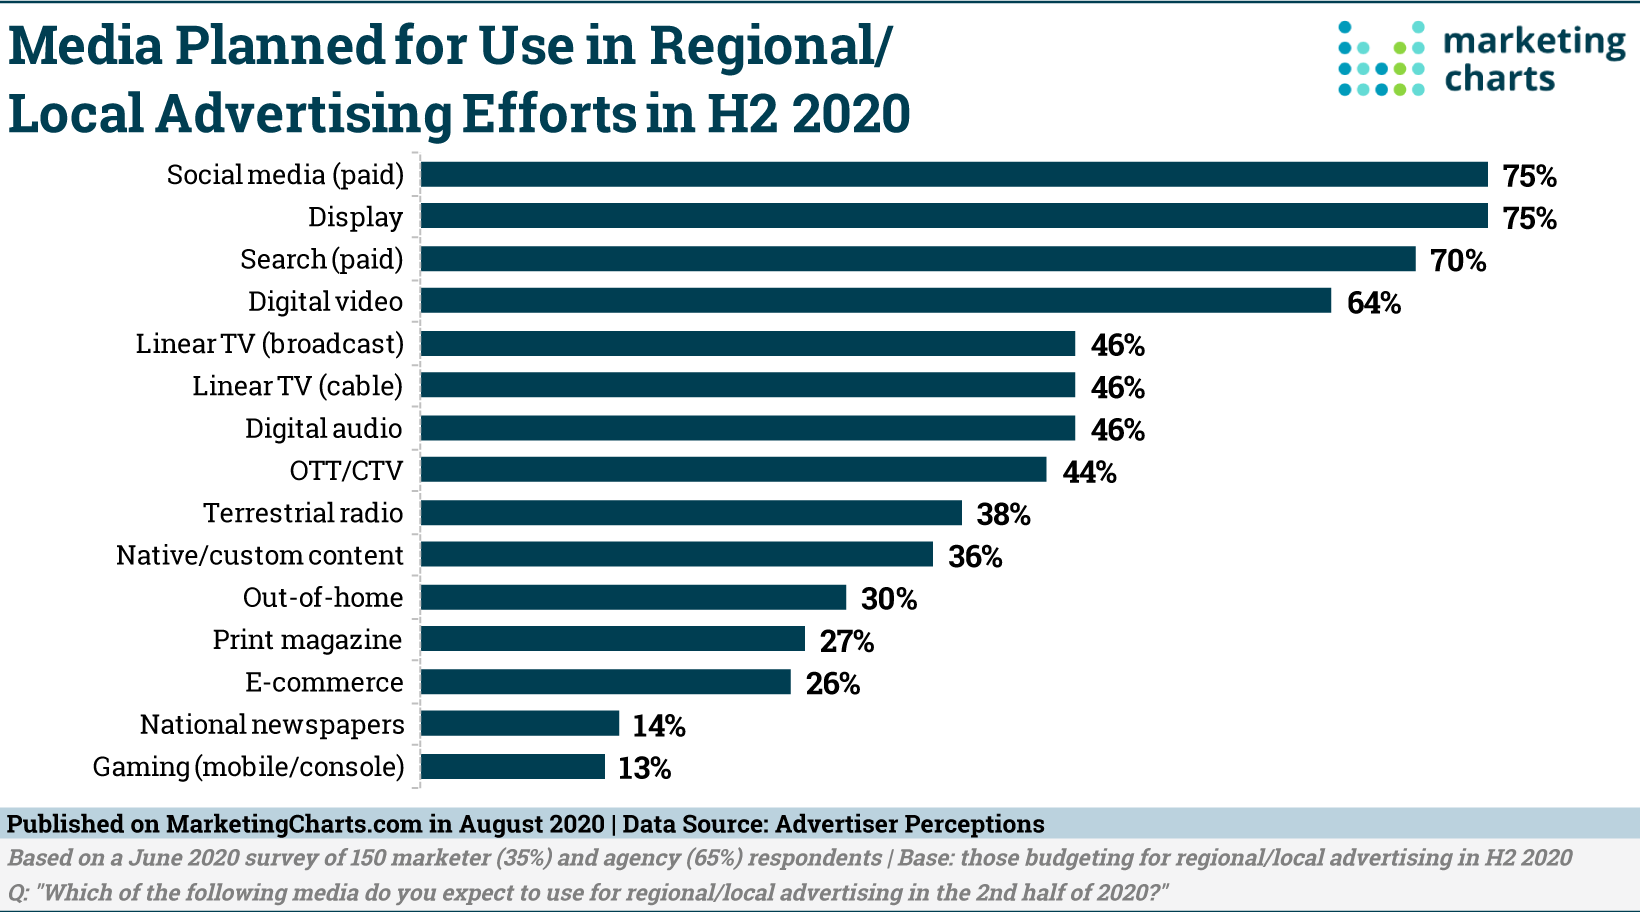 Graphic of Media Planned or use in regional advertising.